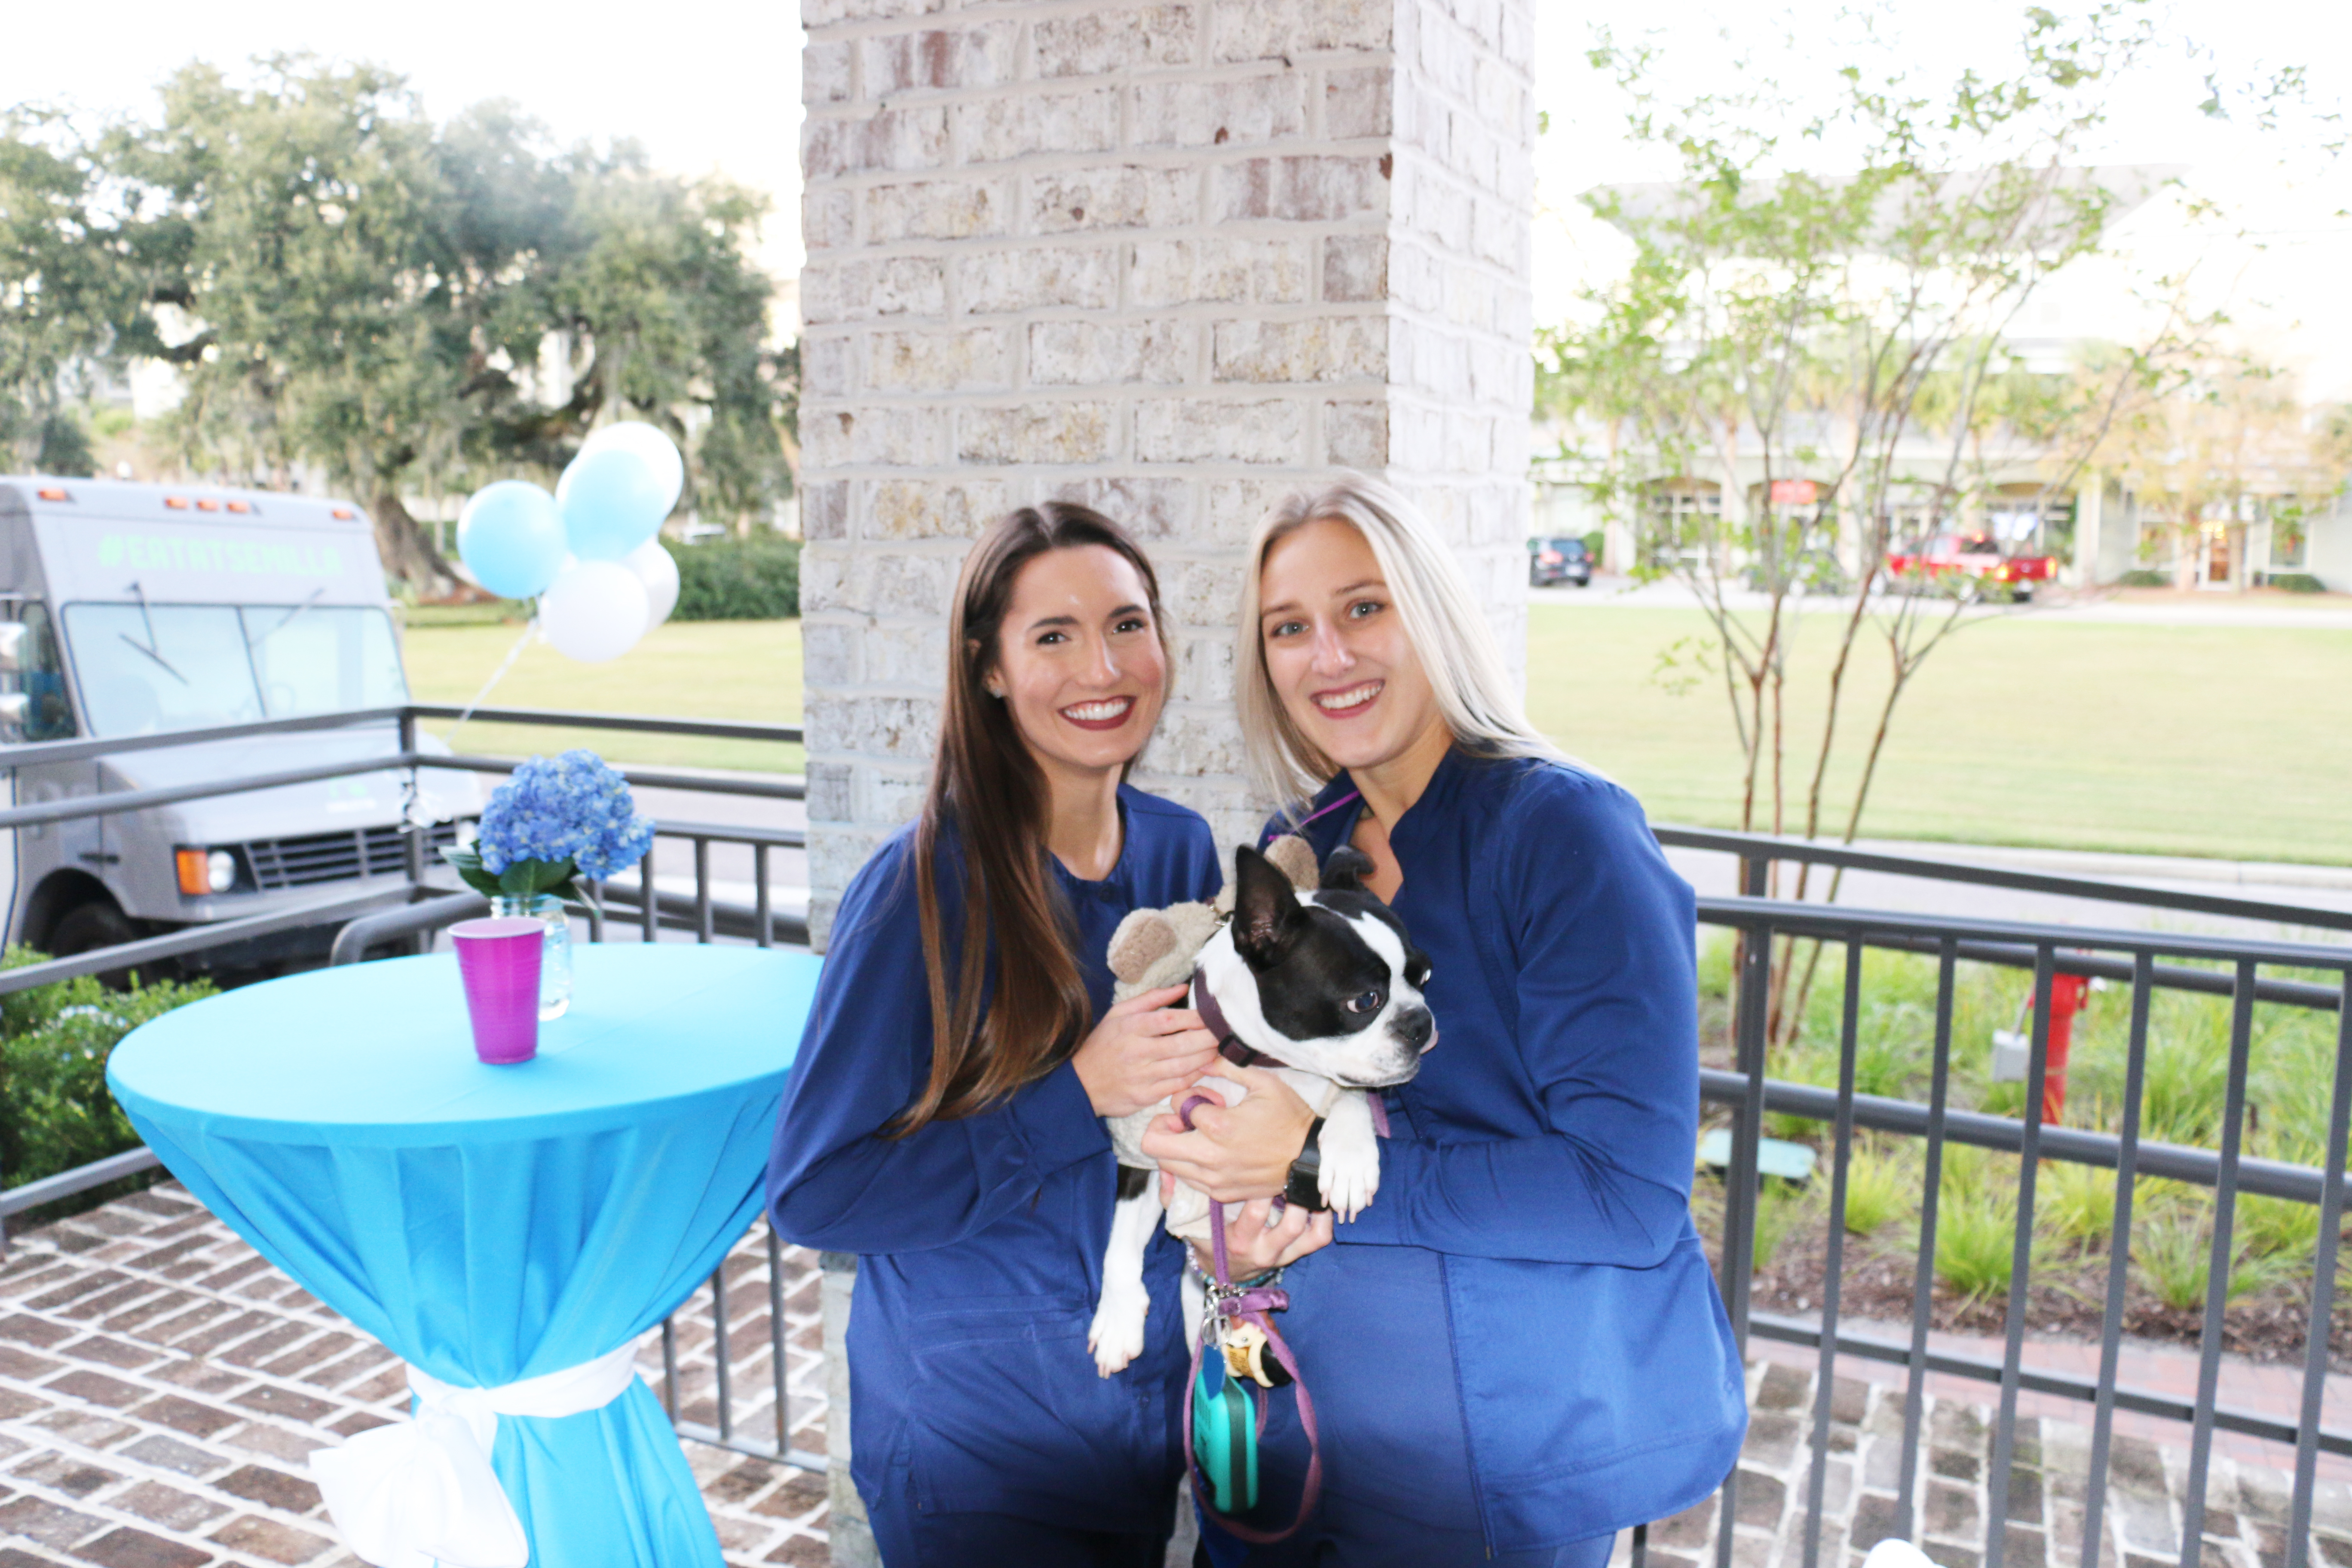 Morgan and Candis, dental hygienists, stay warm during the cool evening celebration by snuggling with their furry friend, Jazz.